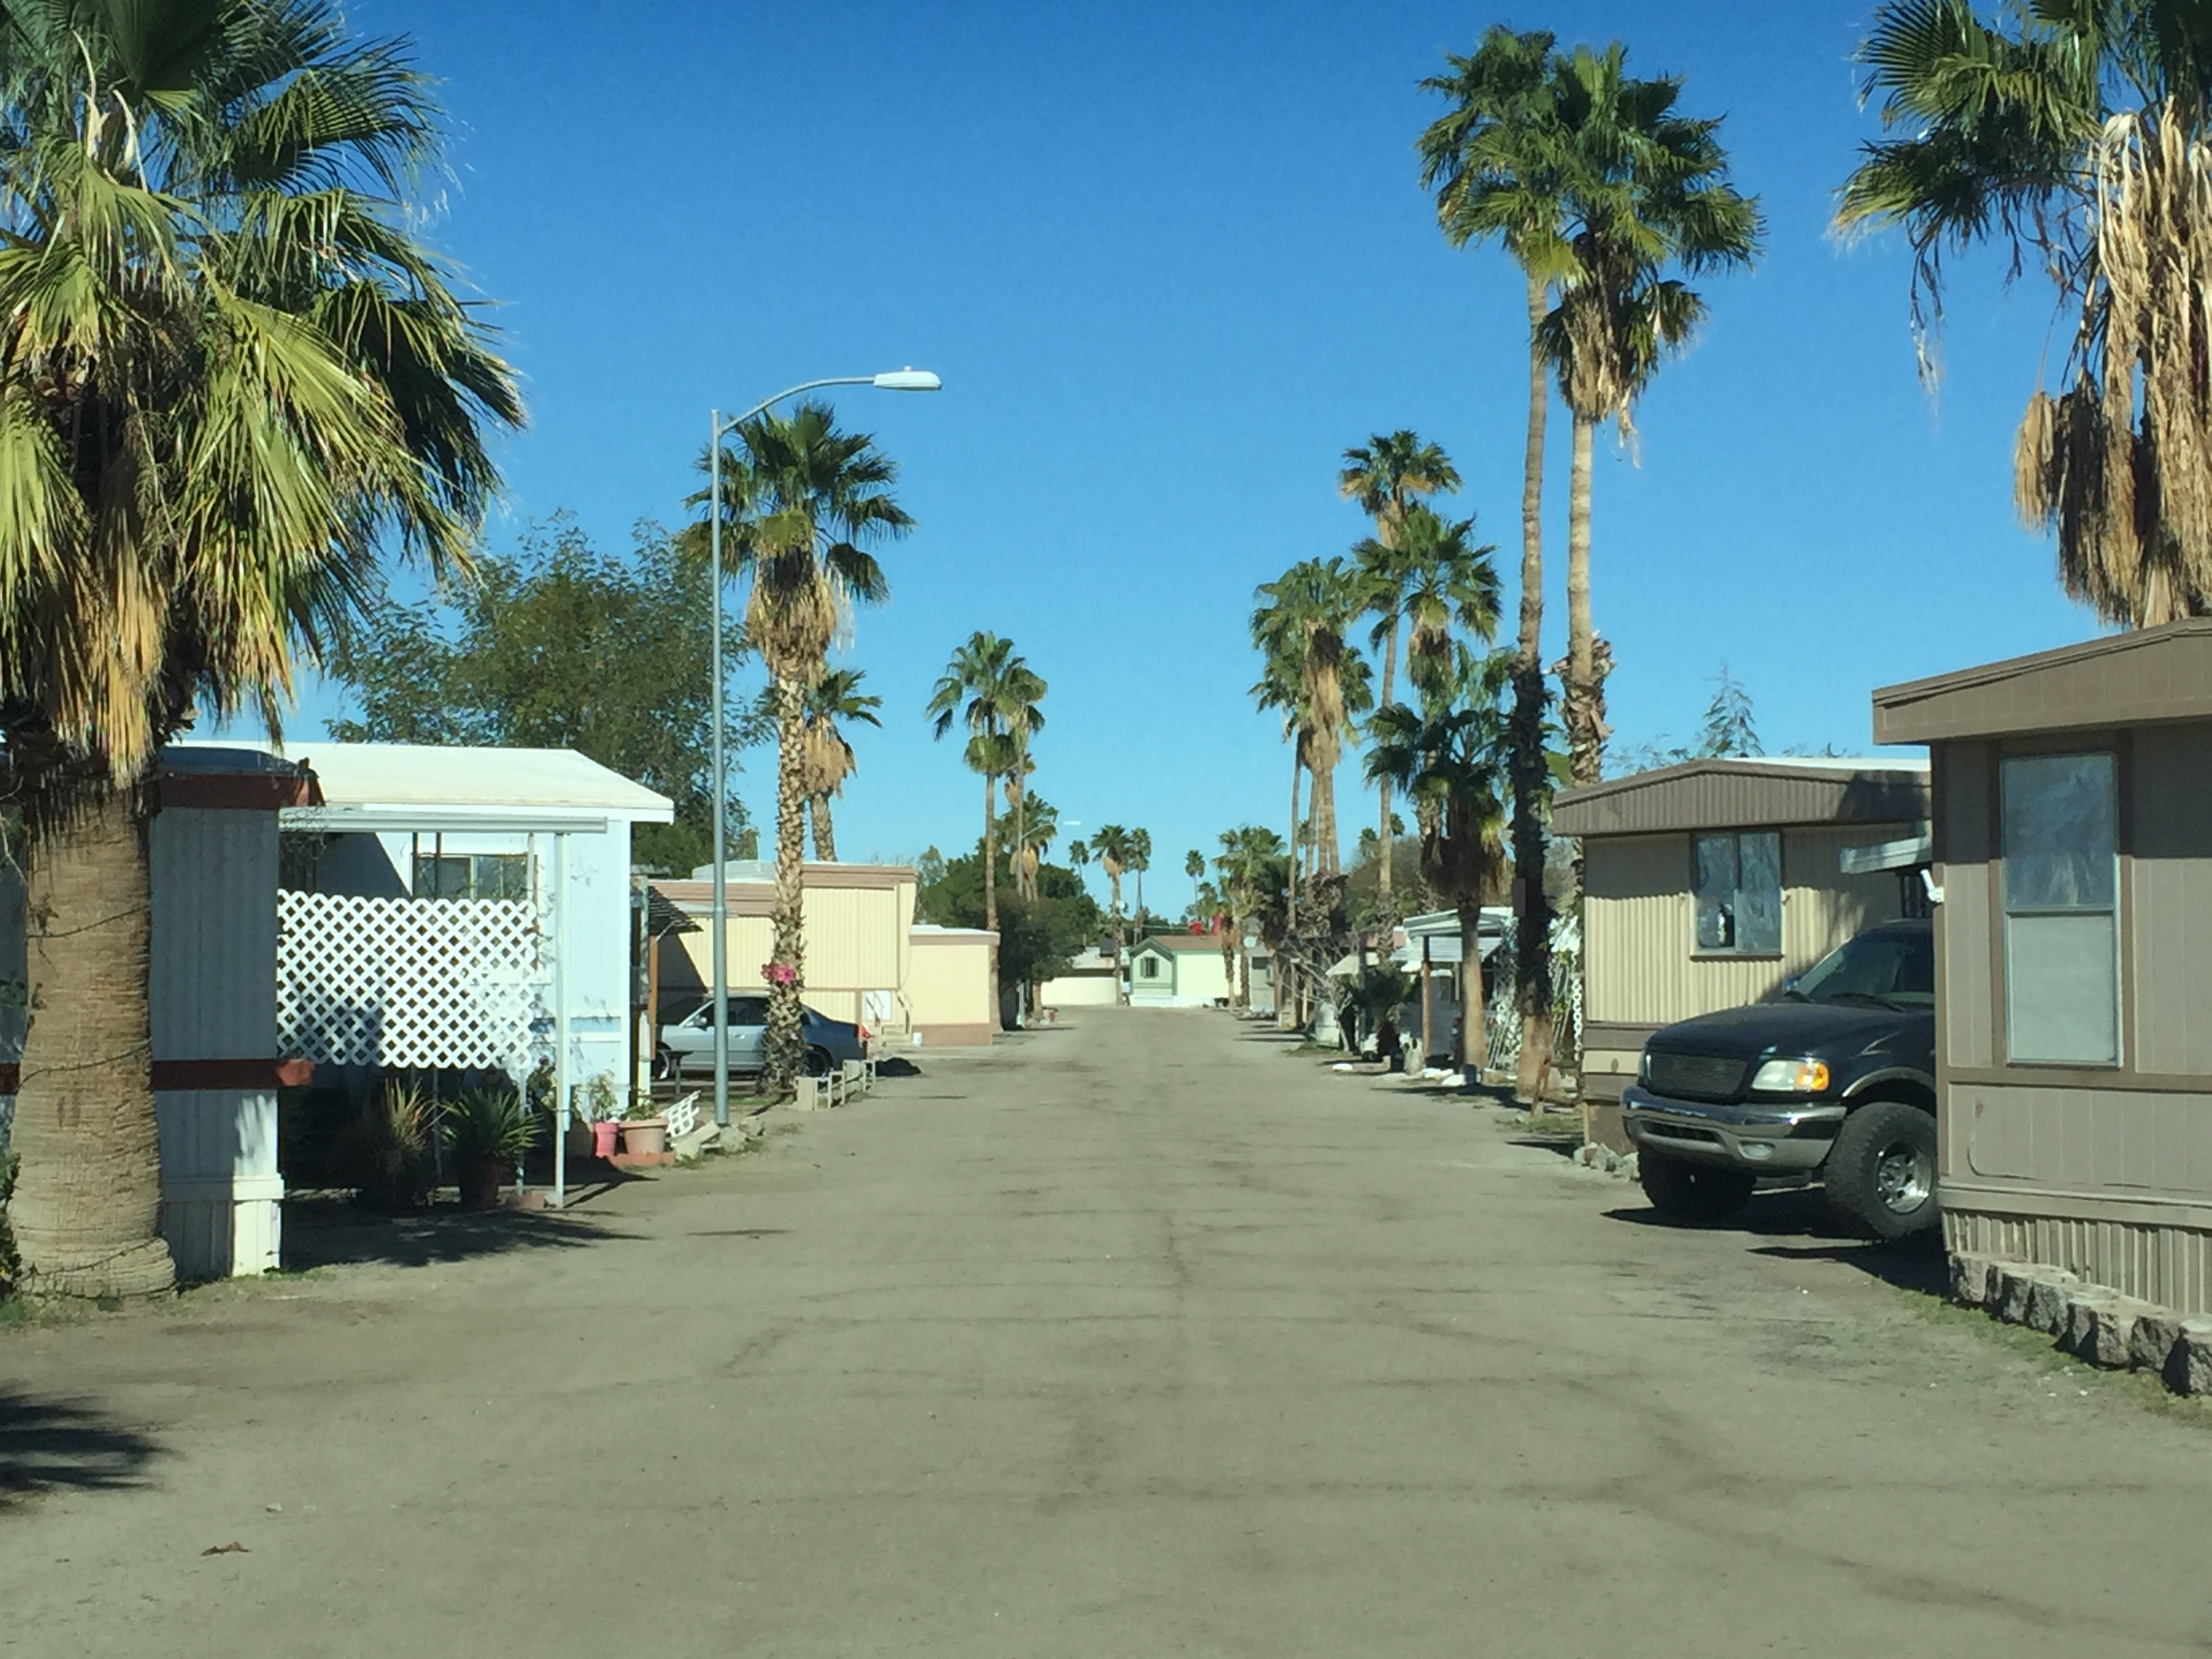 The aging of the mobile home stock and lack of dependable and economical chattel financing has resulted in the inability of many mobile home owners to replace older, substandard homes in rental parks.